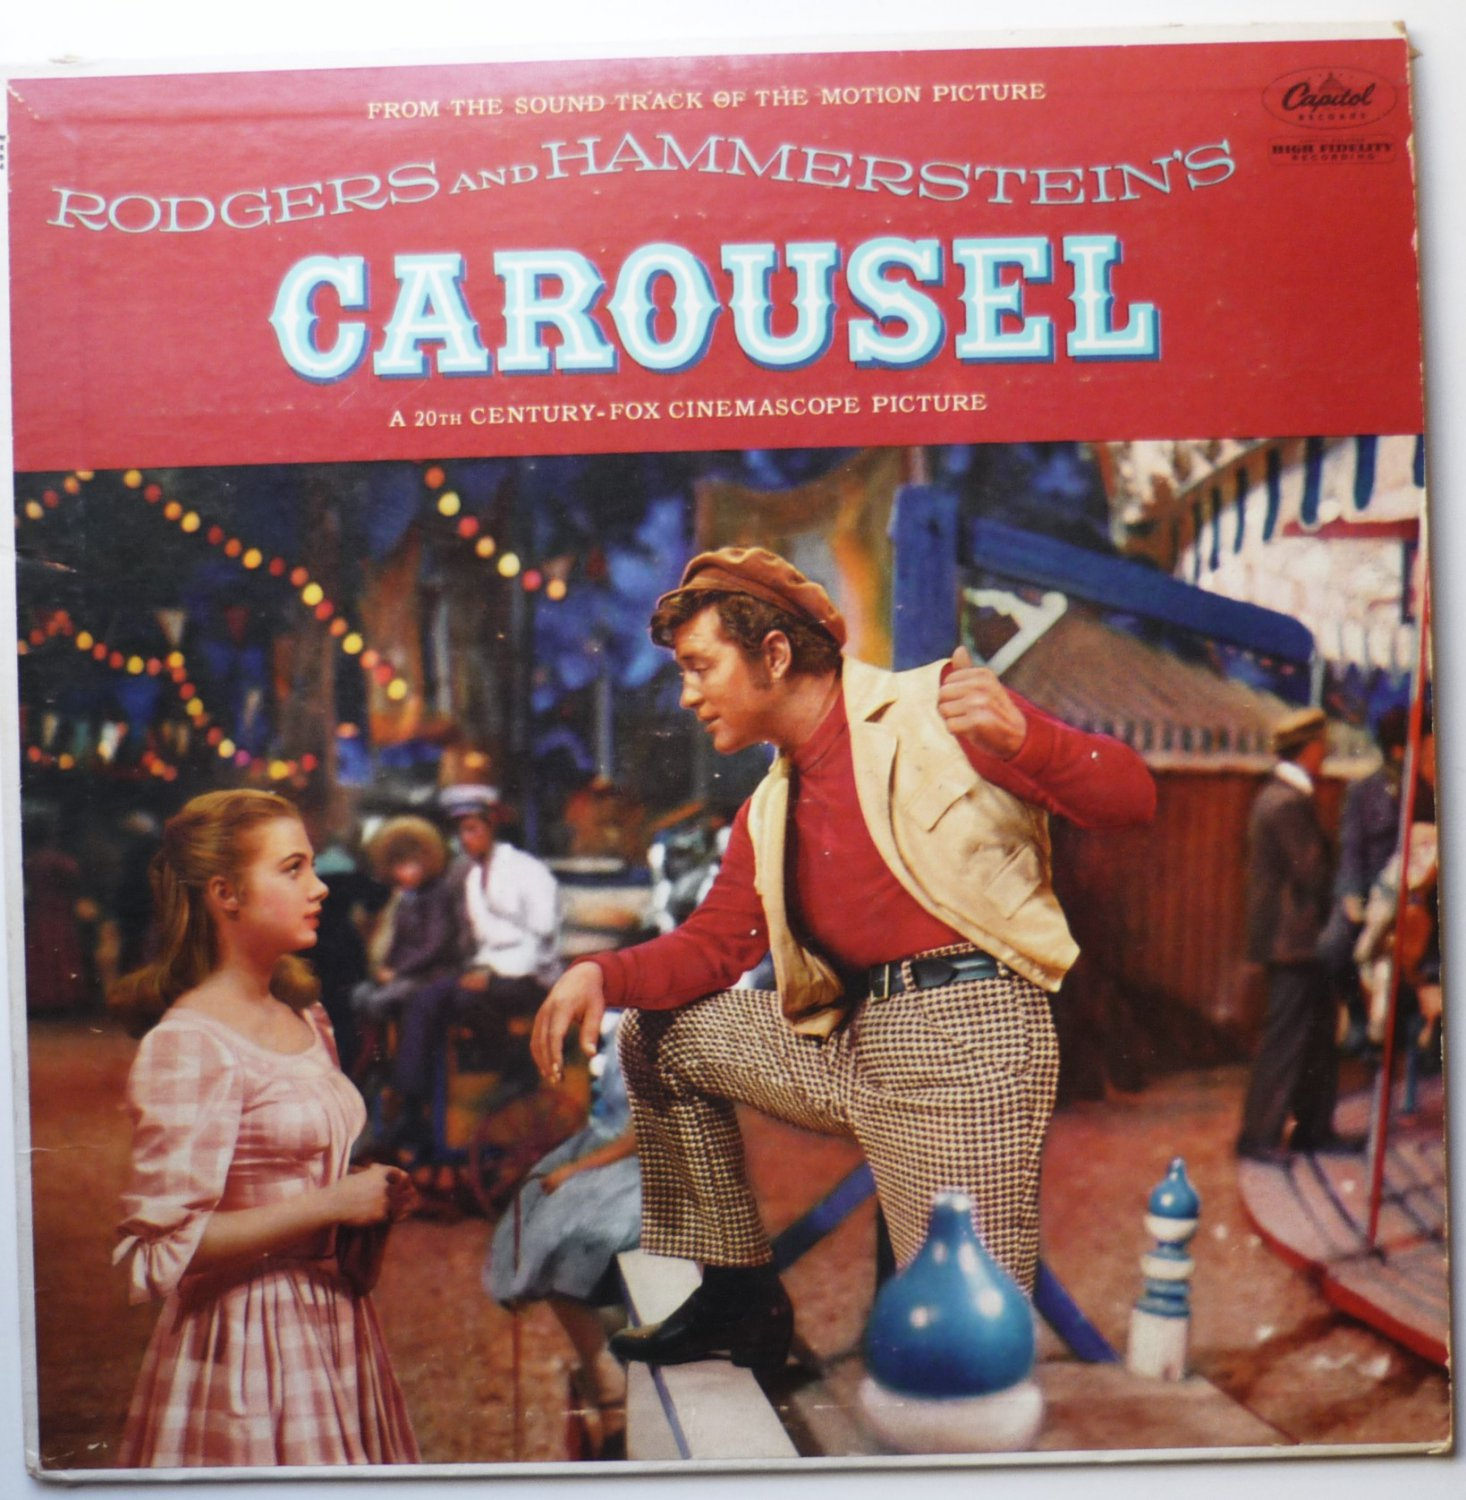 Carousel - Soundtrack lp Rodgers and Hammerstein